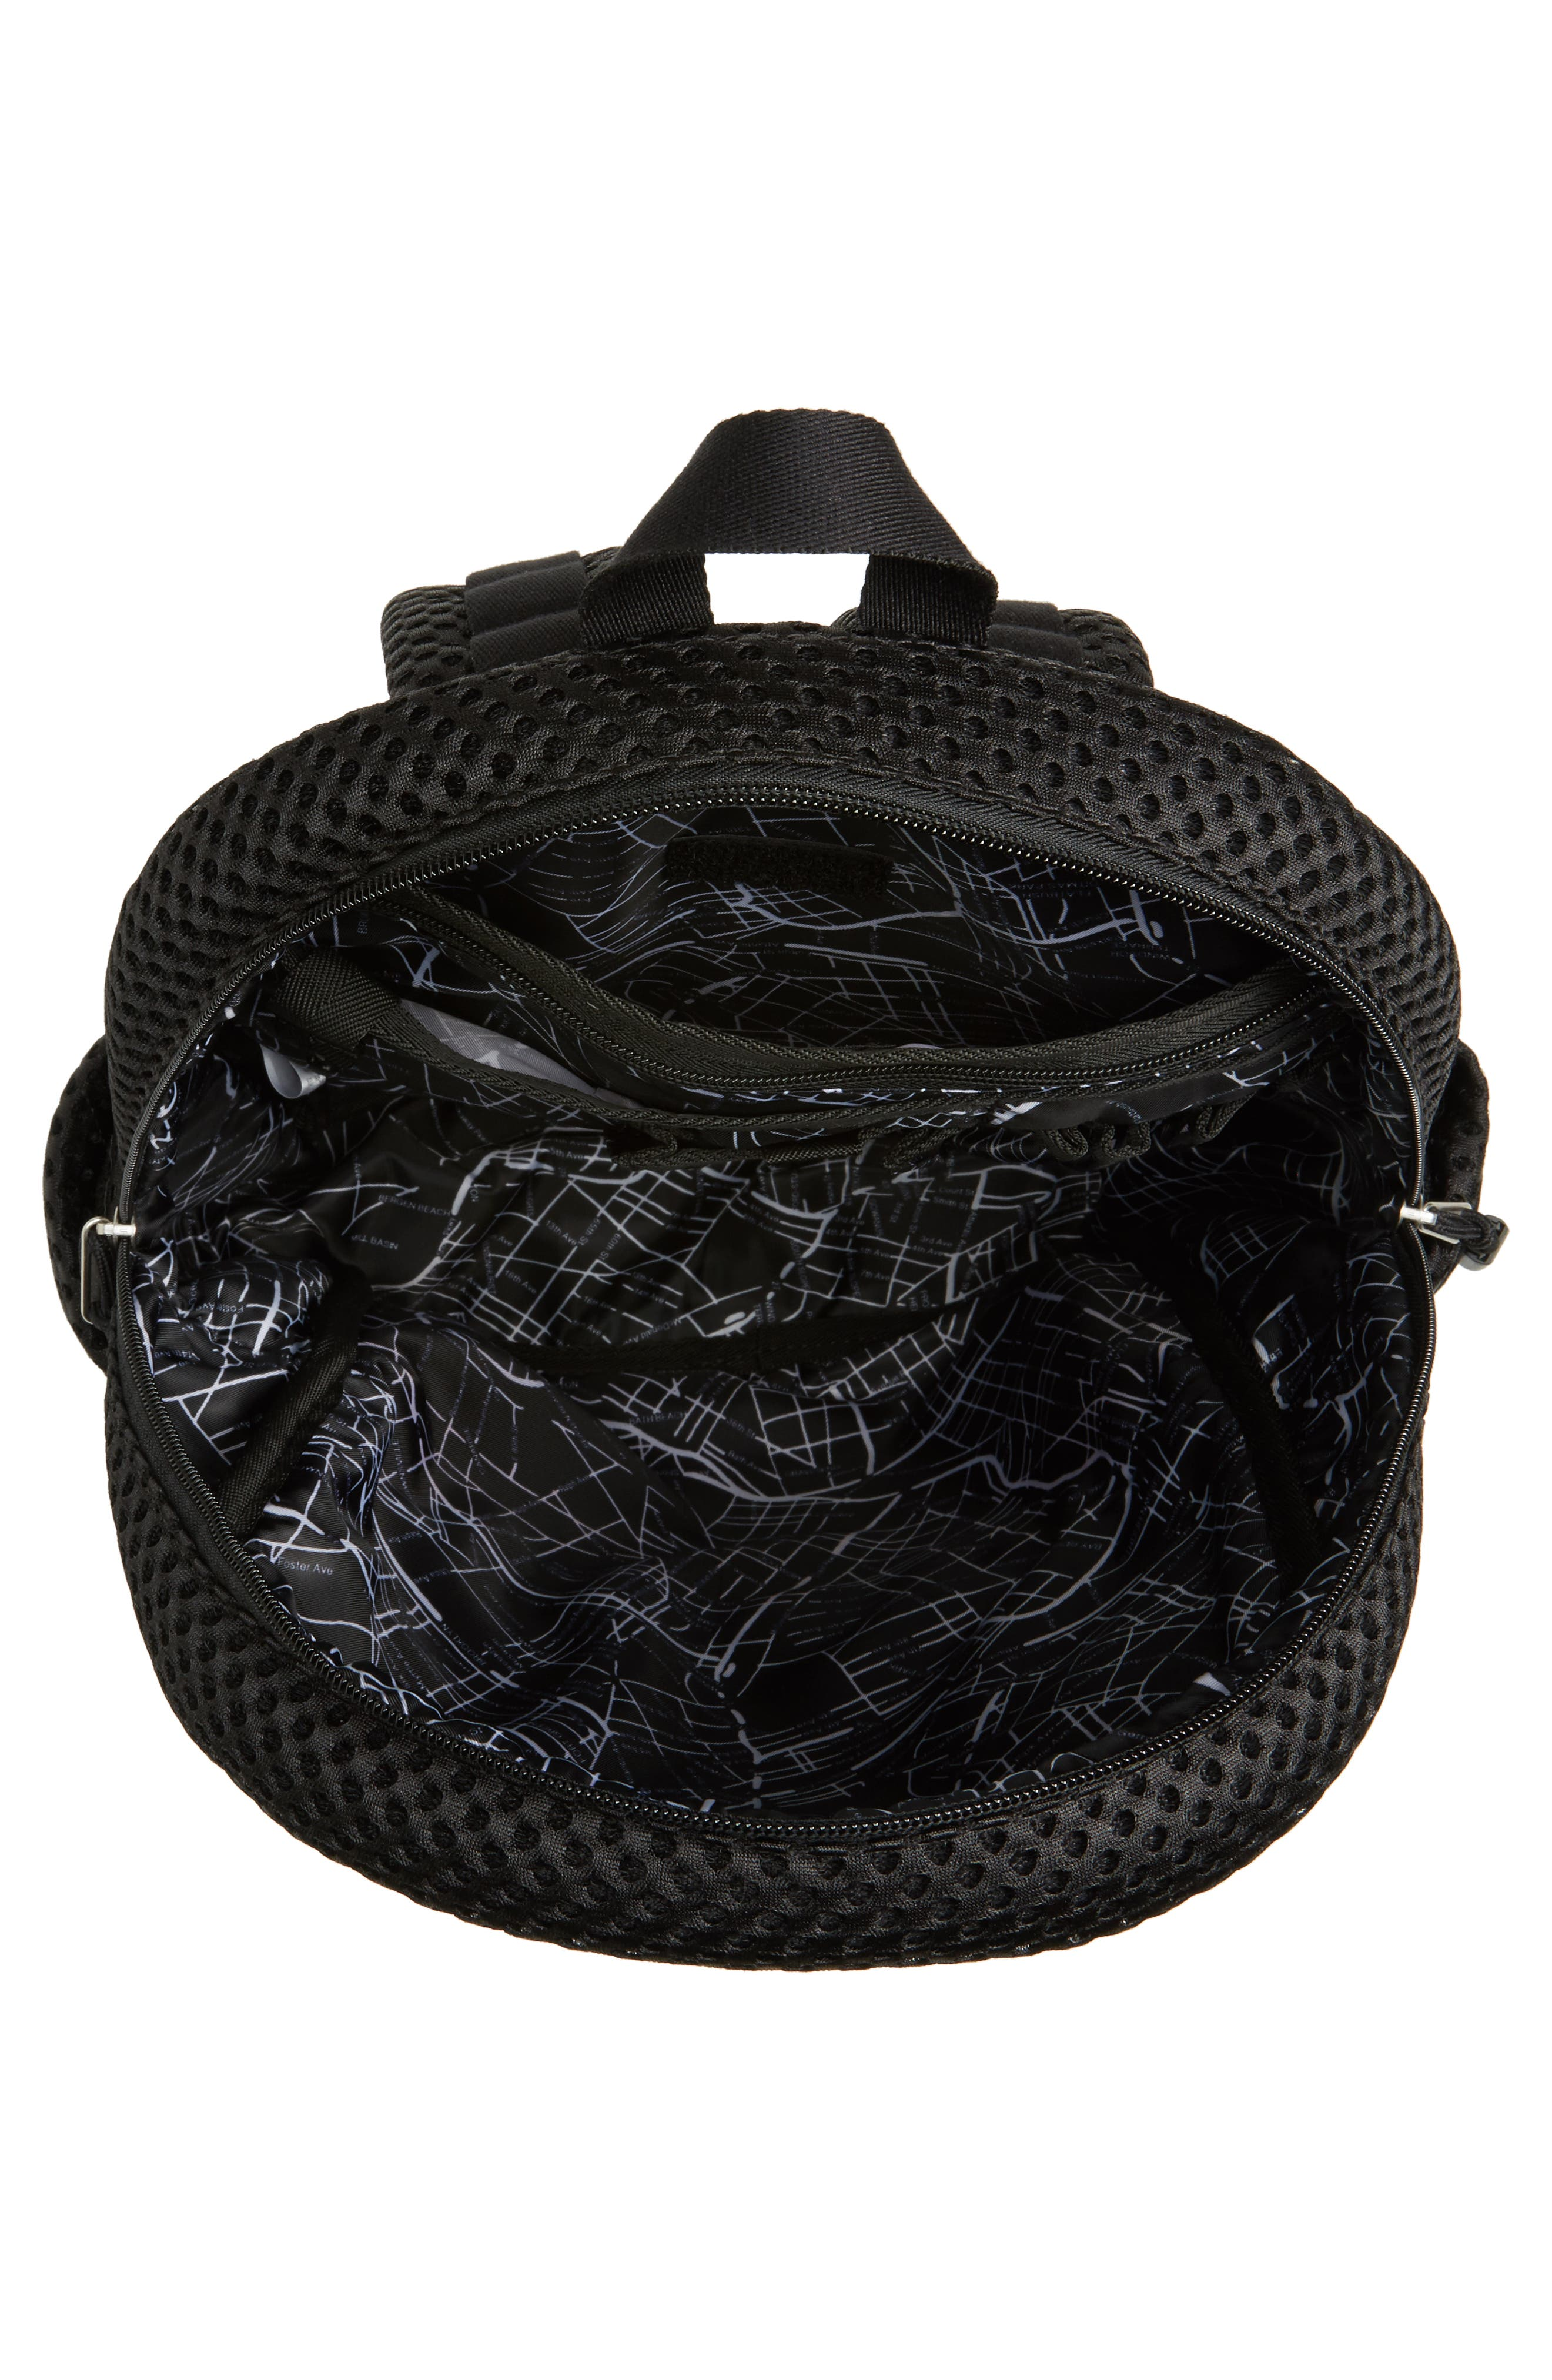 Lacrosse Mesh Kane Backpack,                             Alternate thumbnail 4, color,                             001